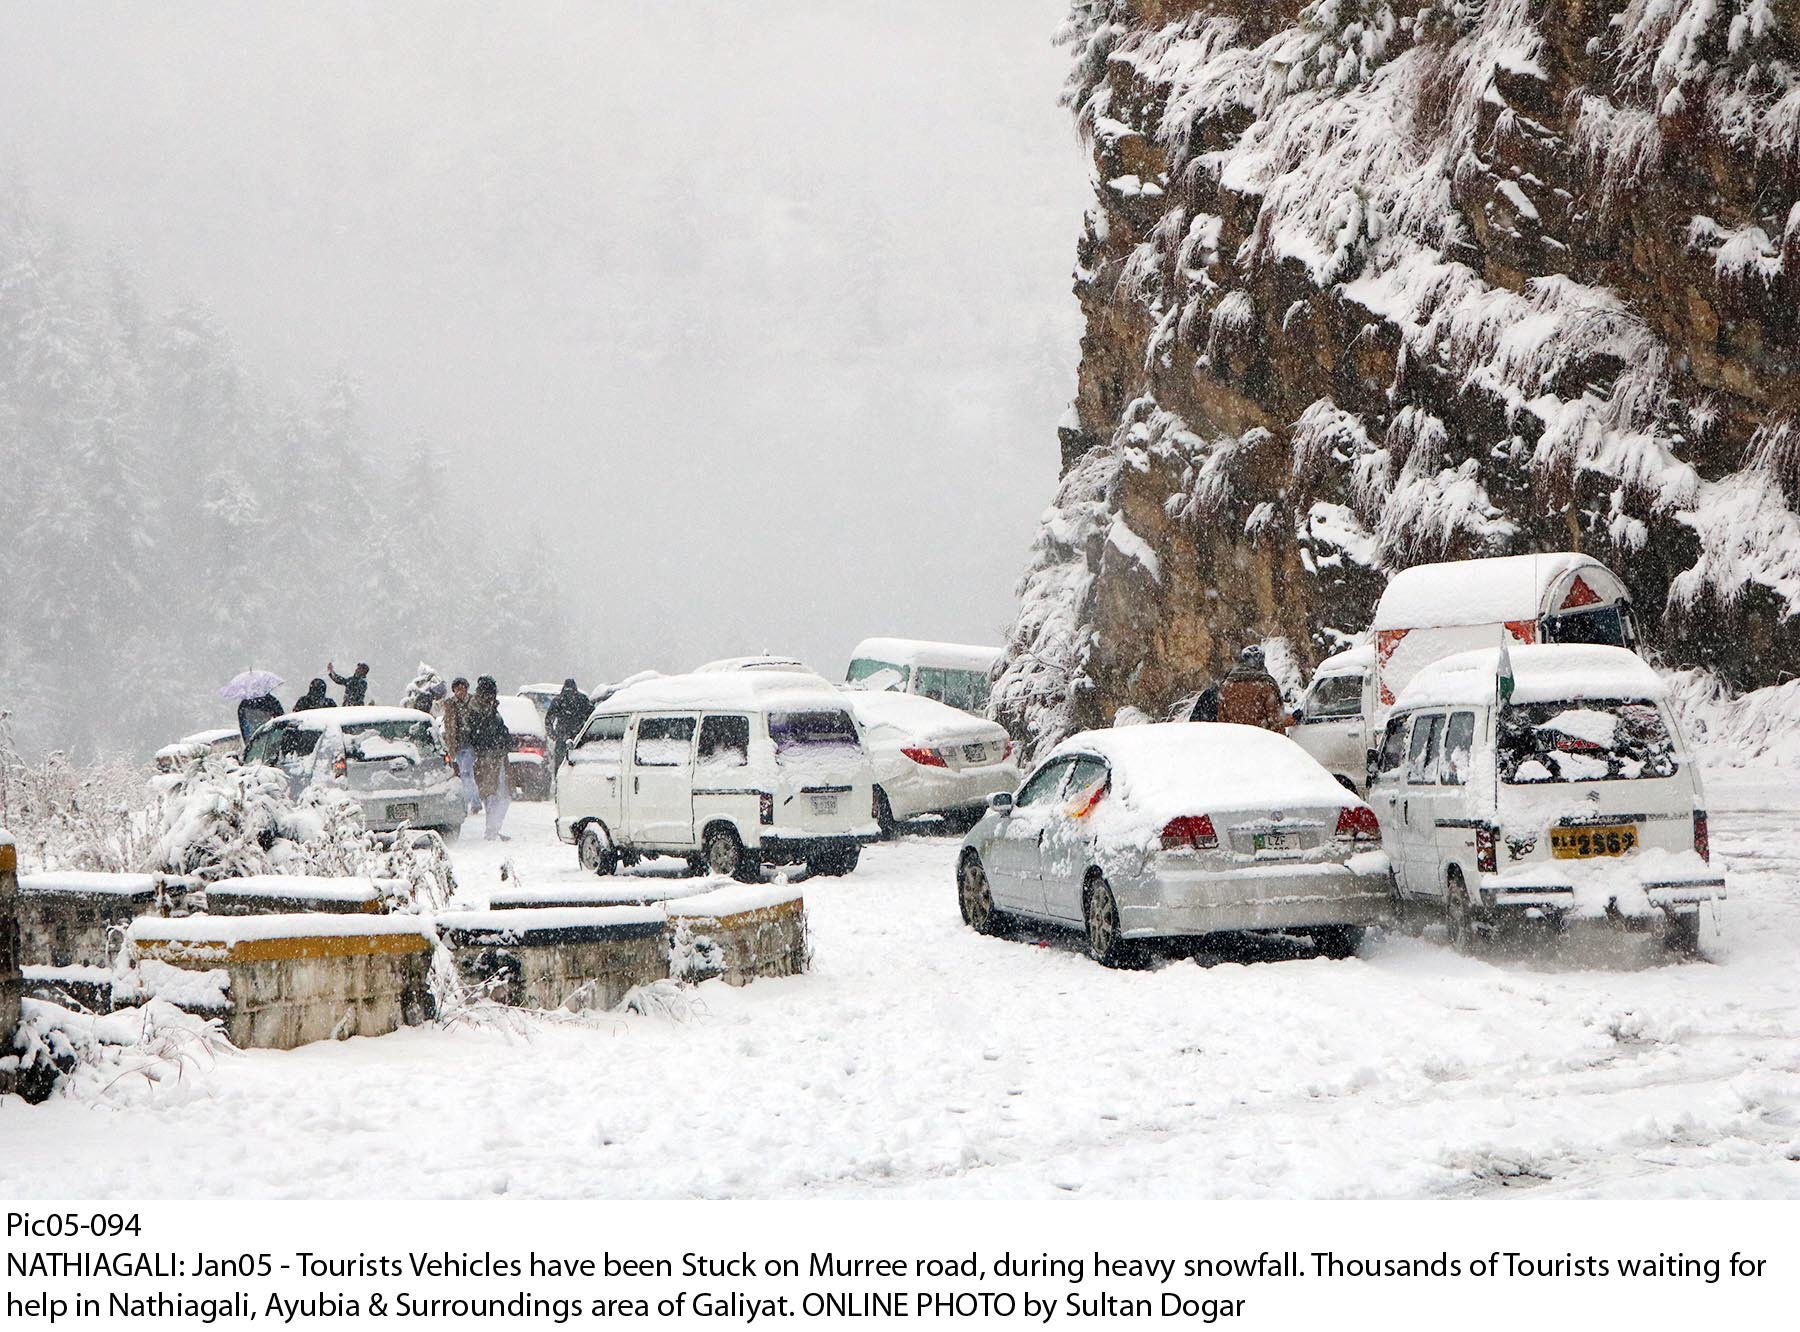 ctp issues travel advisory for tourists travelling to murree